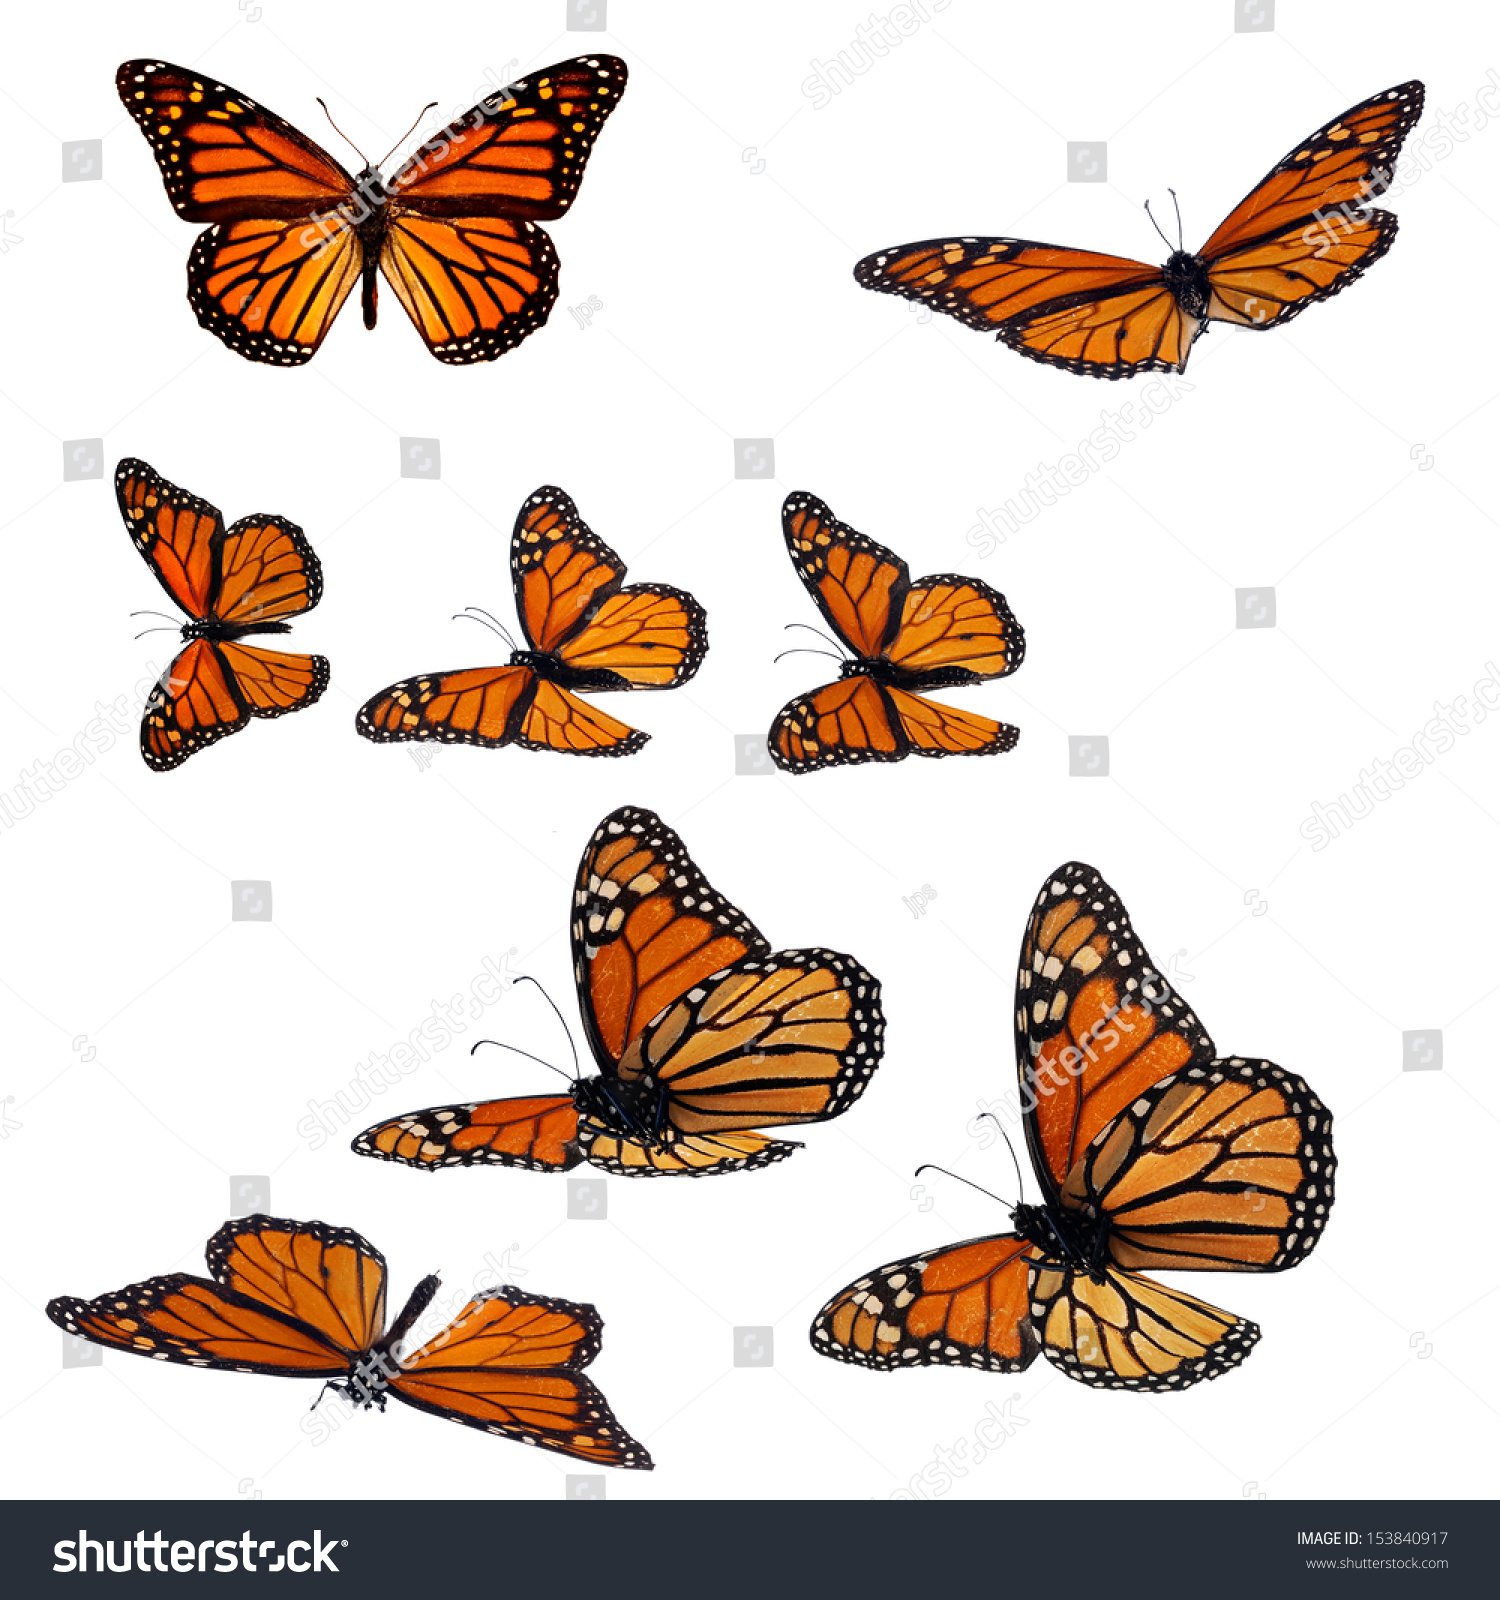 Collection monarch butterflies stock photo 153840917 shutterstock collection of monarch butterflies biocorpaavc Gallery